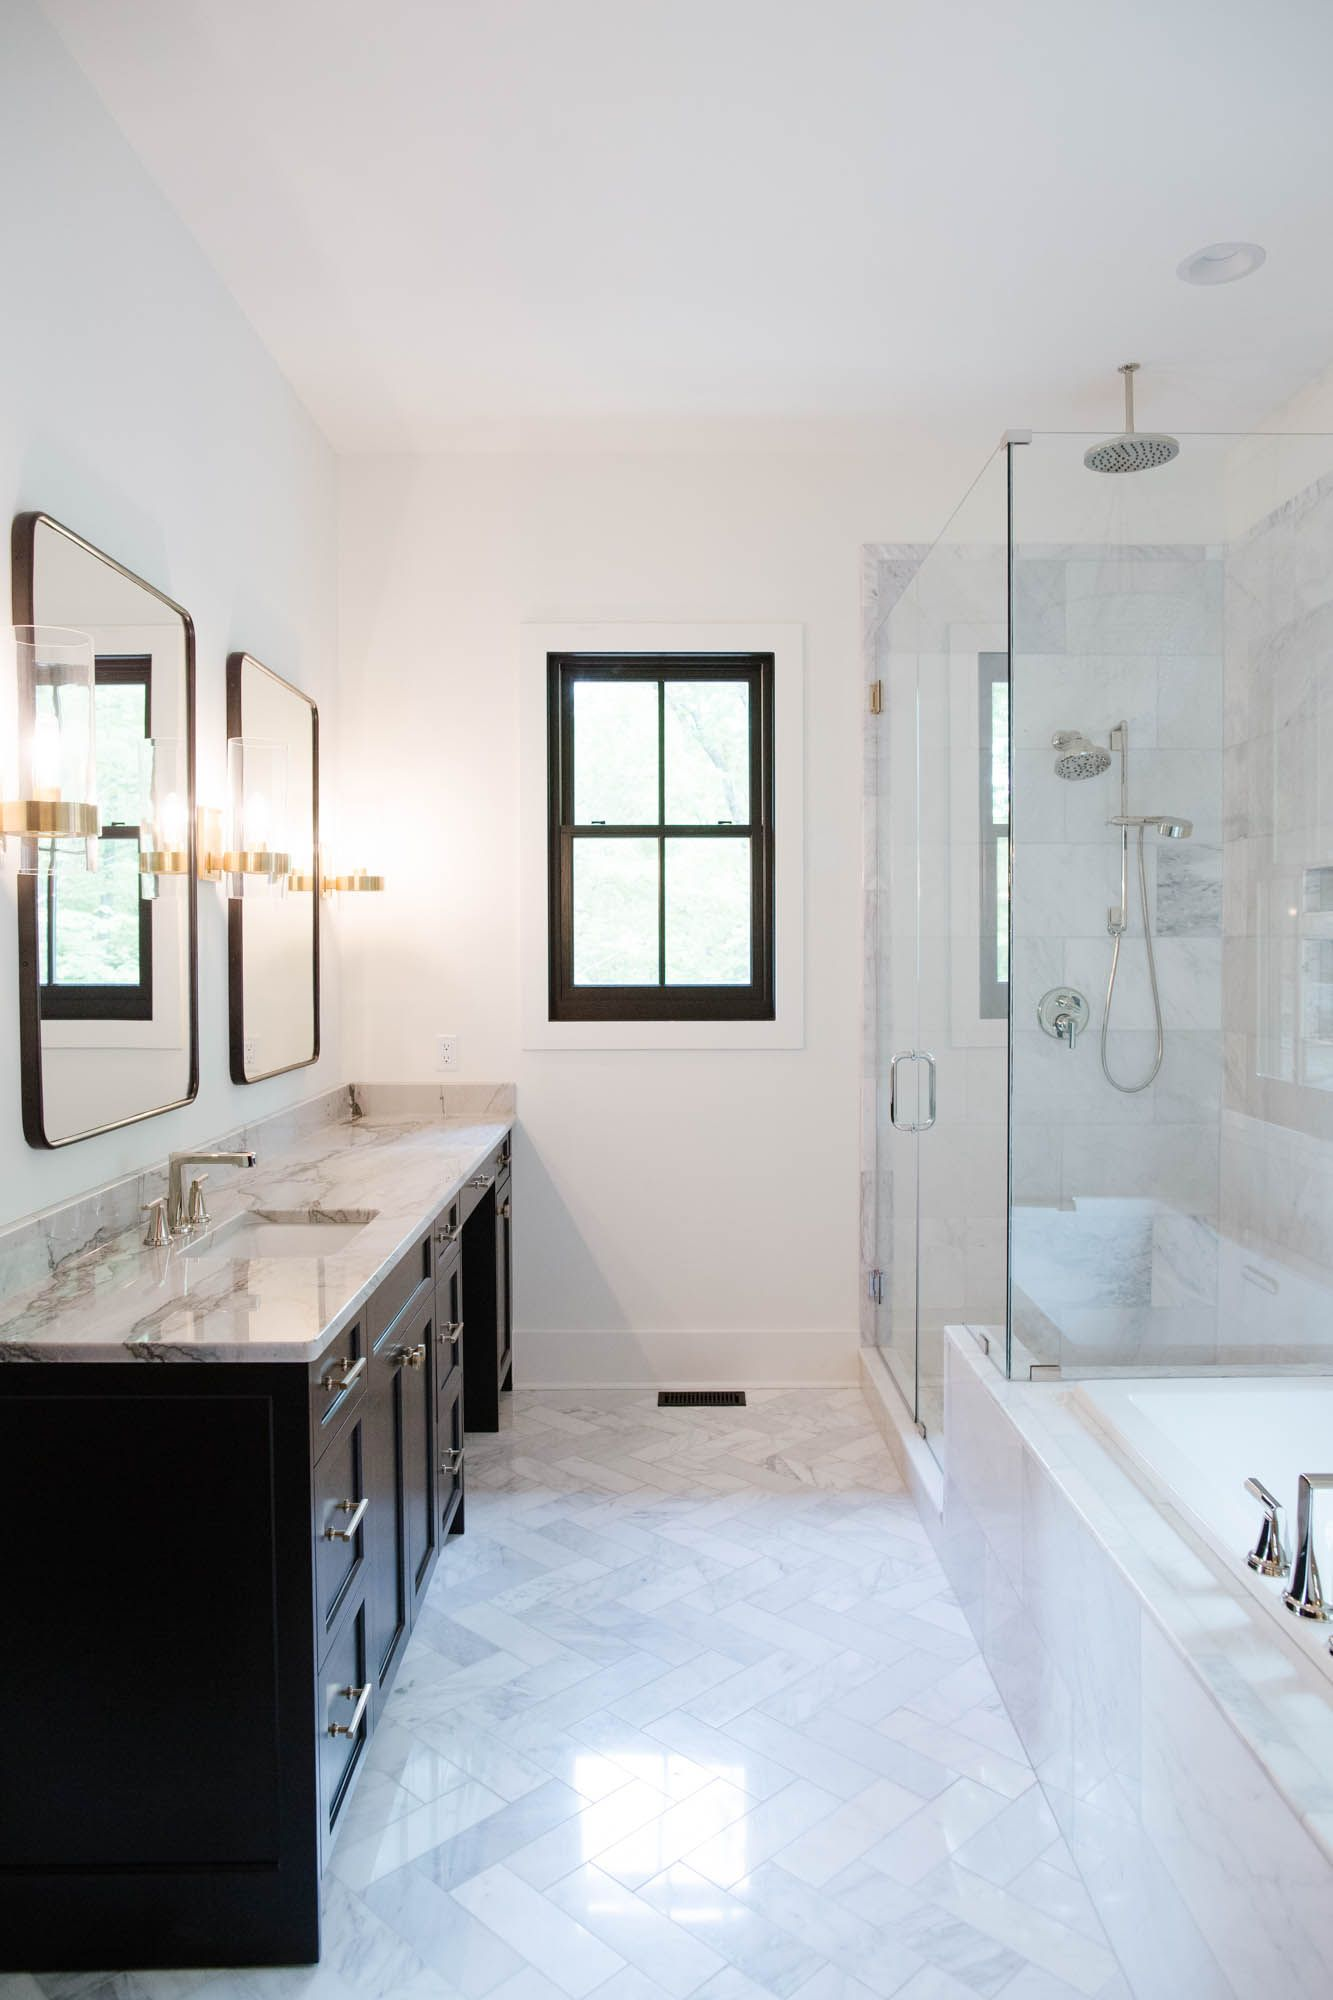 Cooper At Home Our Tile Selections Cristin Cooper White Marble Bathrooms Residential Tile White Marble Floor